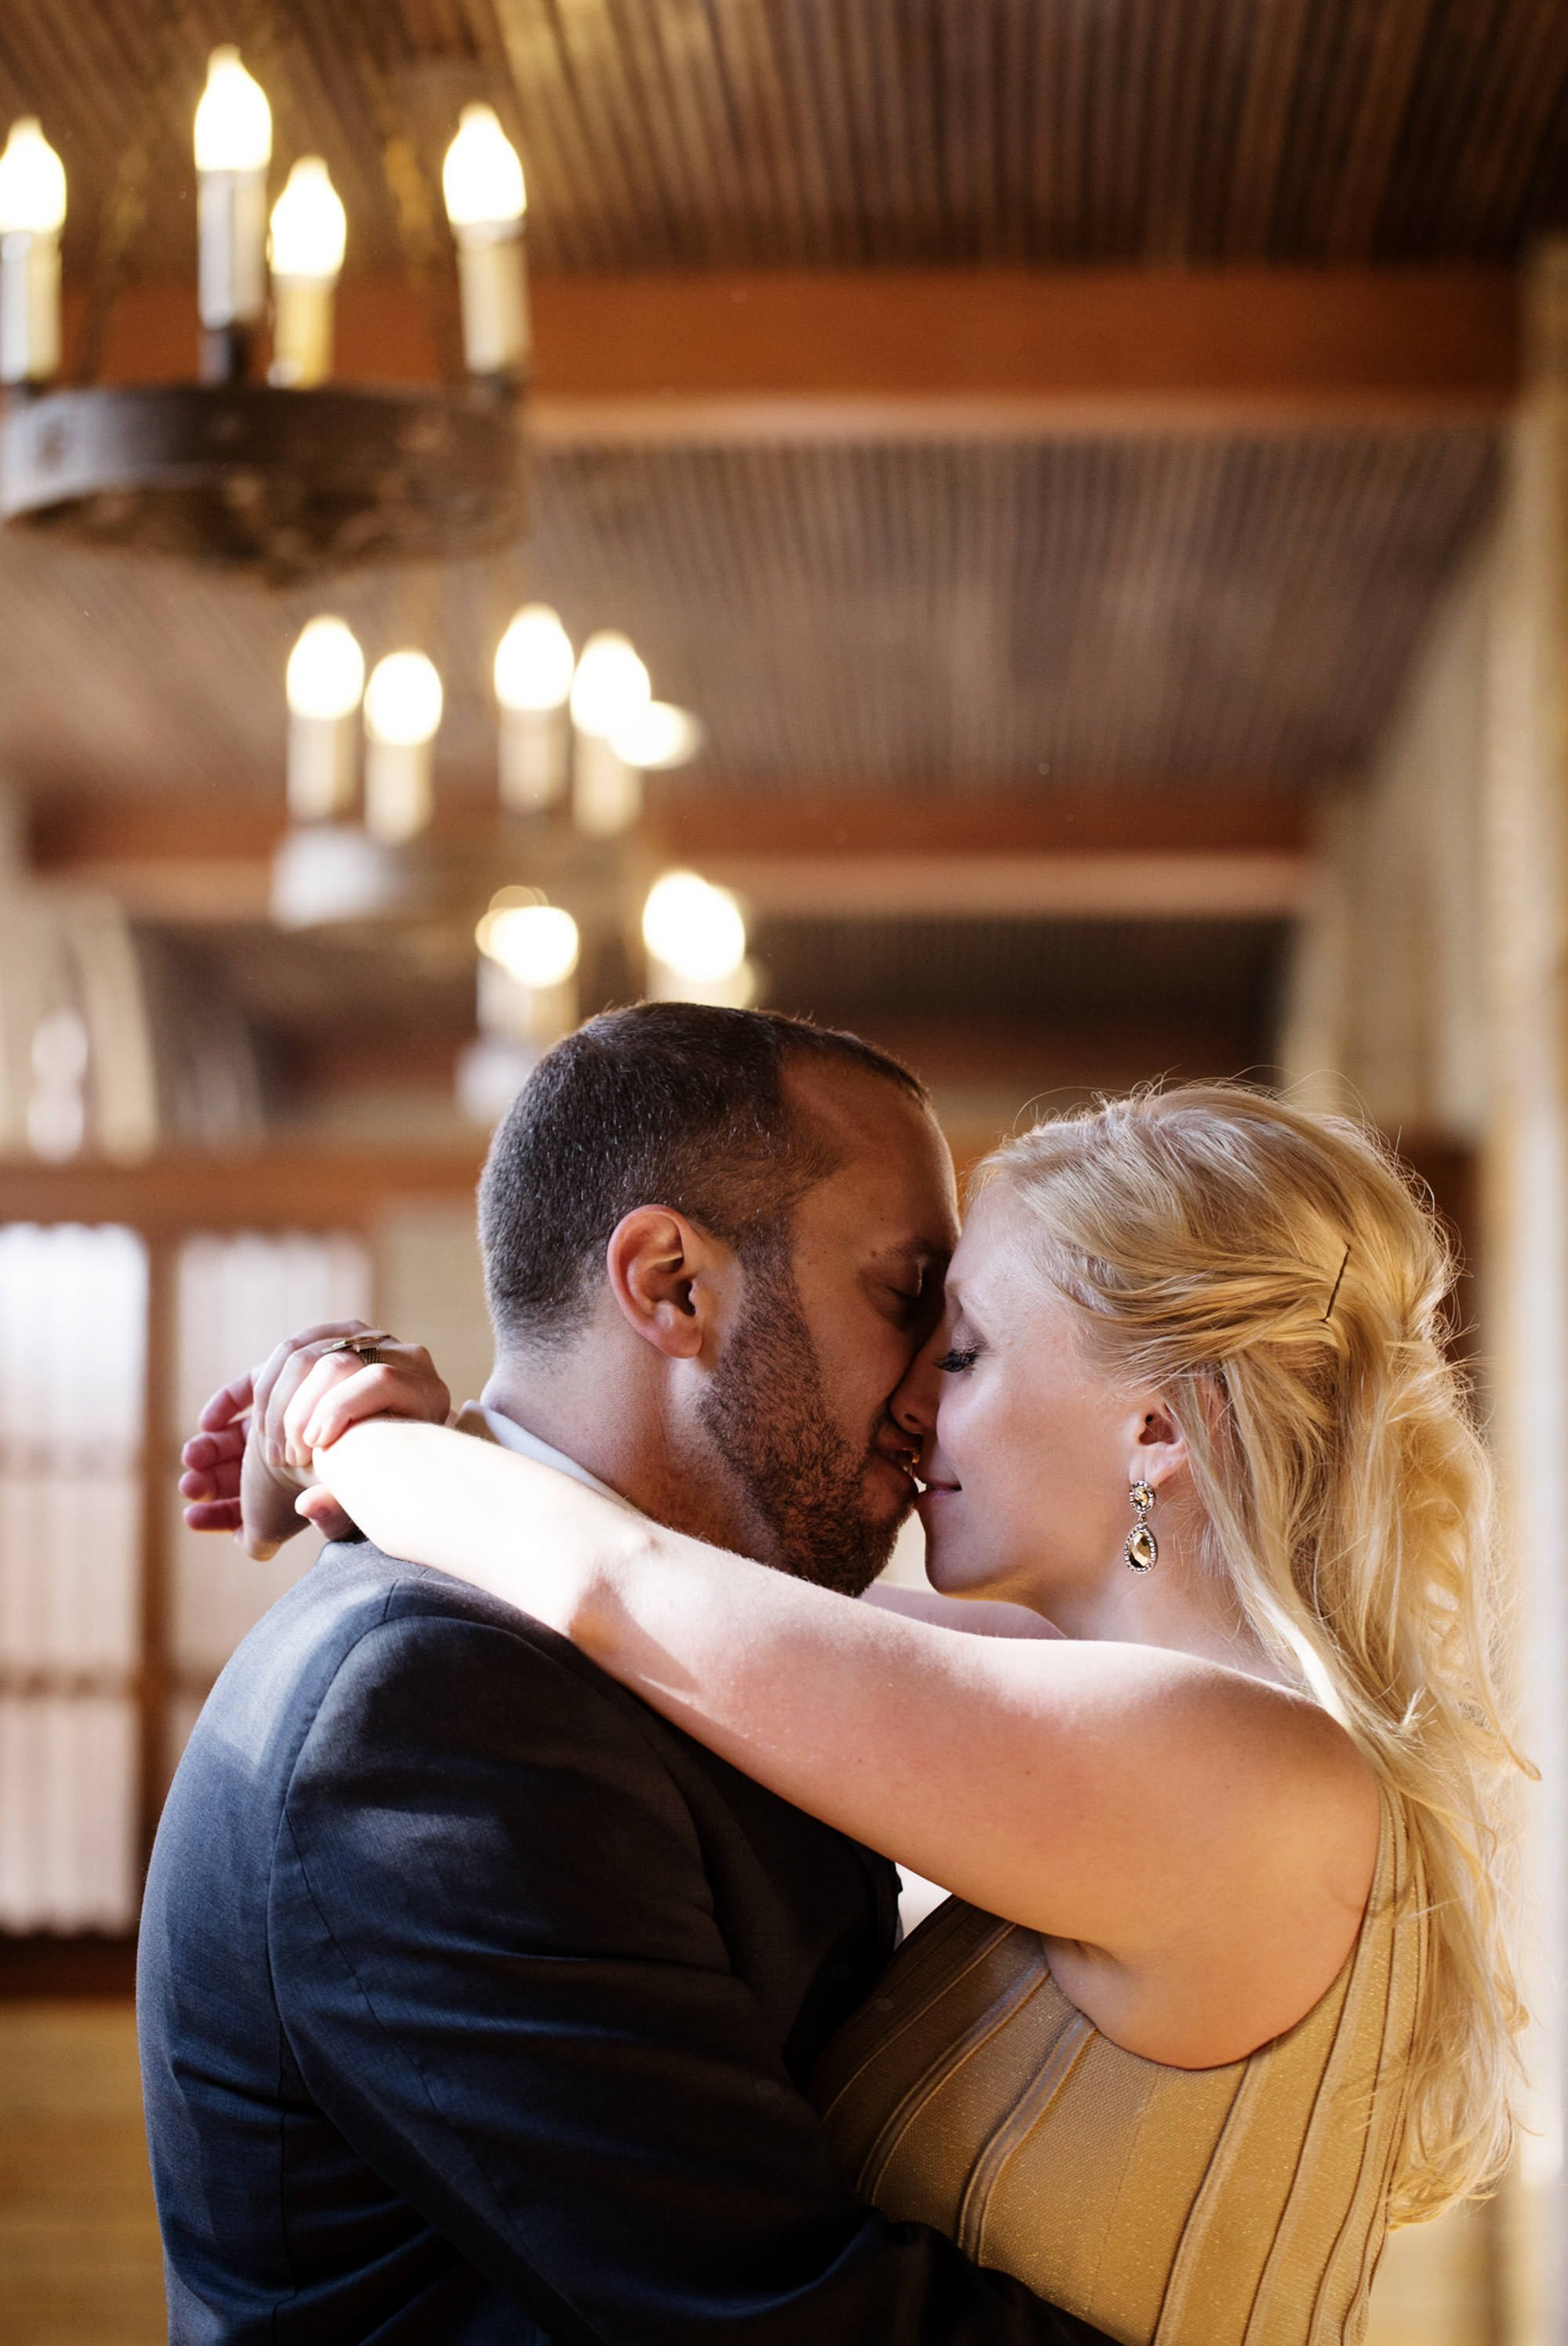 The couple kisses after the wedding ceremony at St Francis Hall.